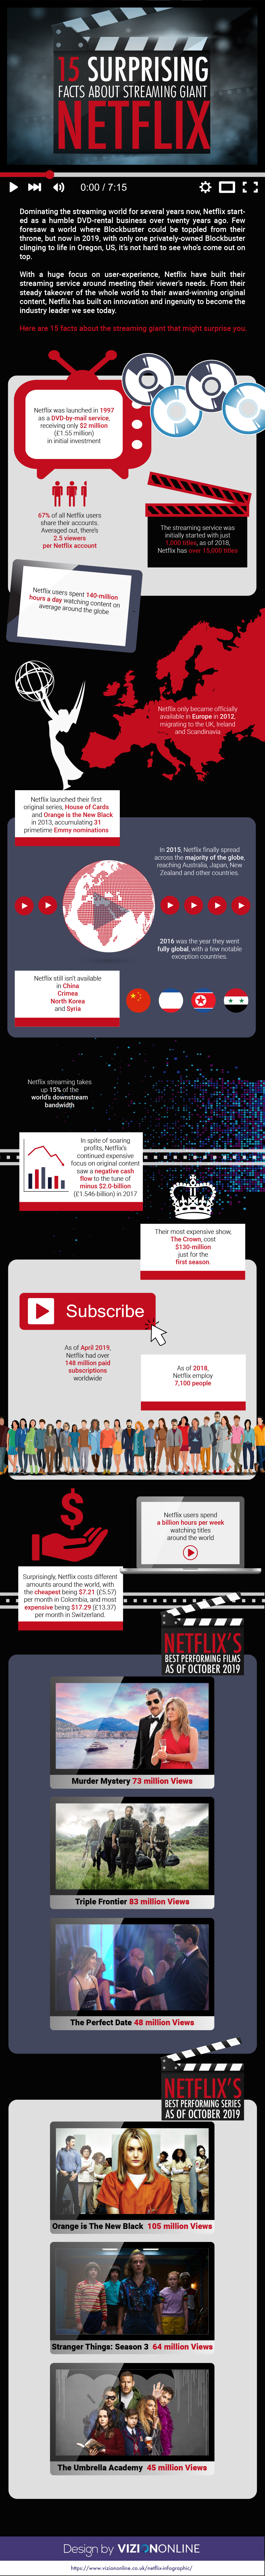 15 Wow! Facts About Netflix - Infographic